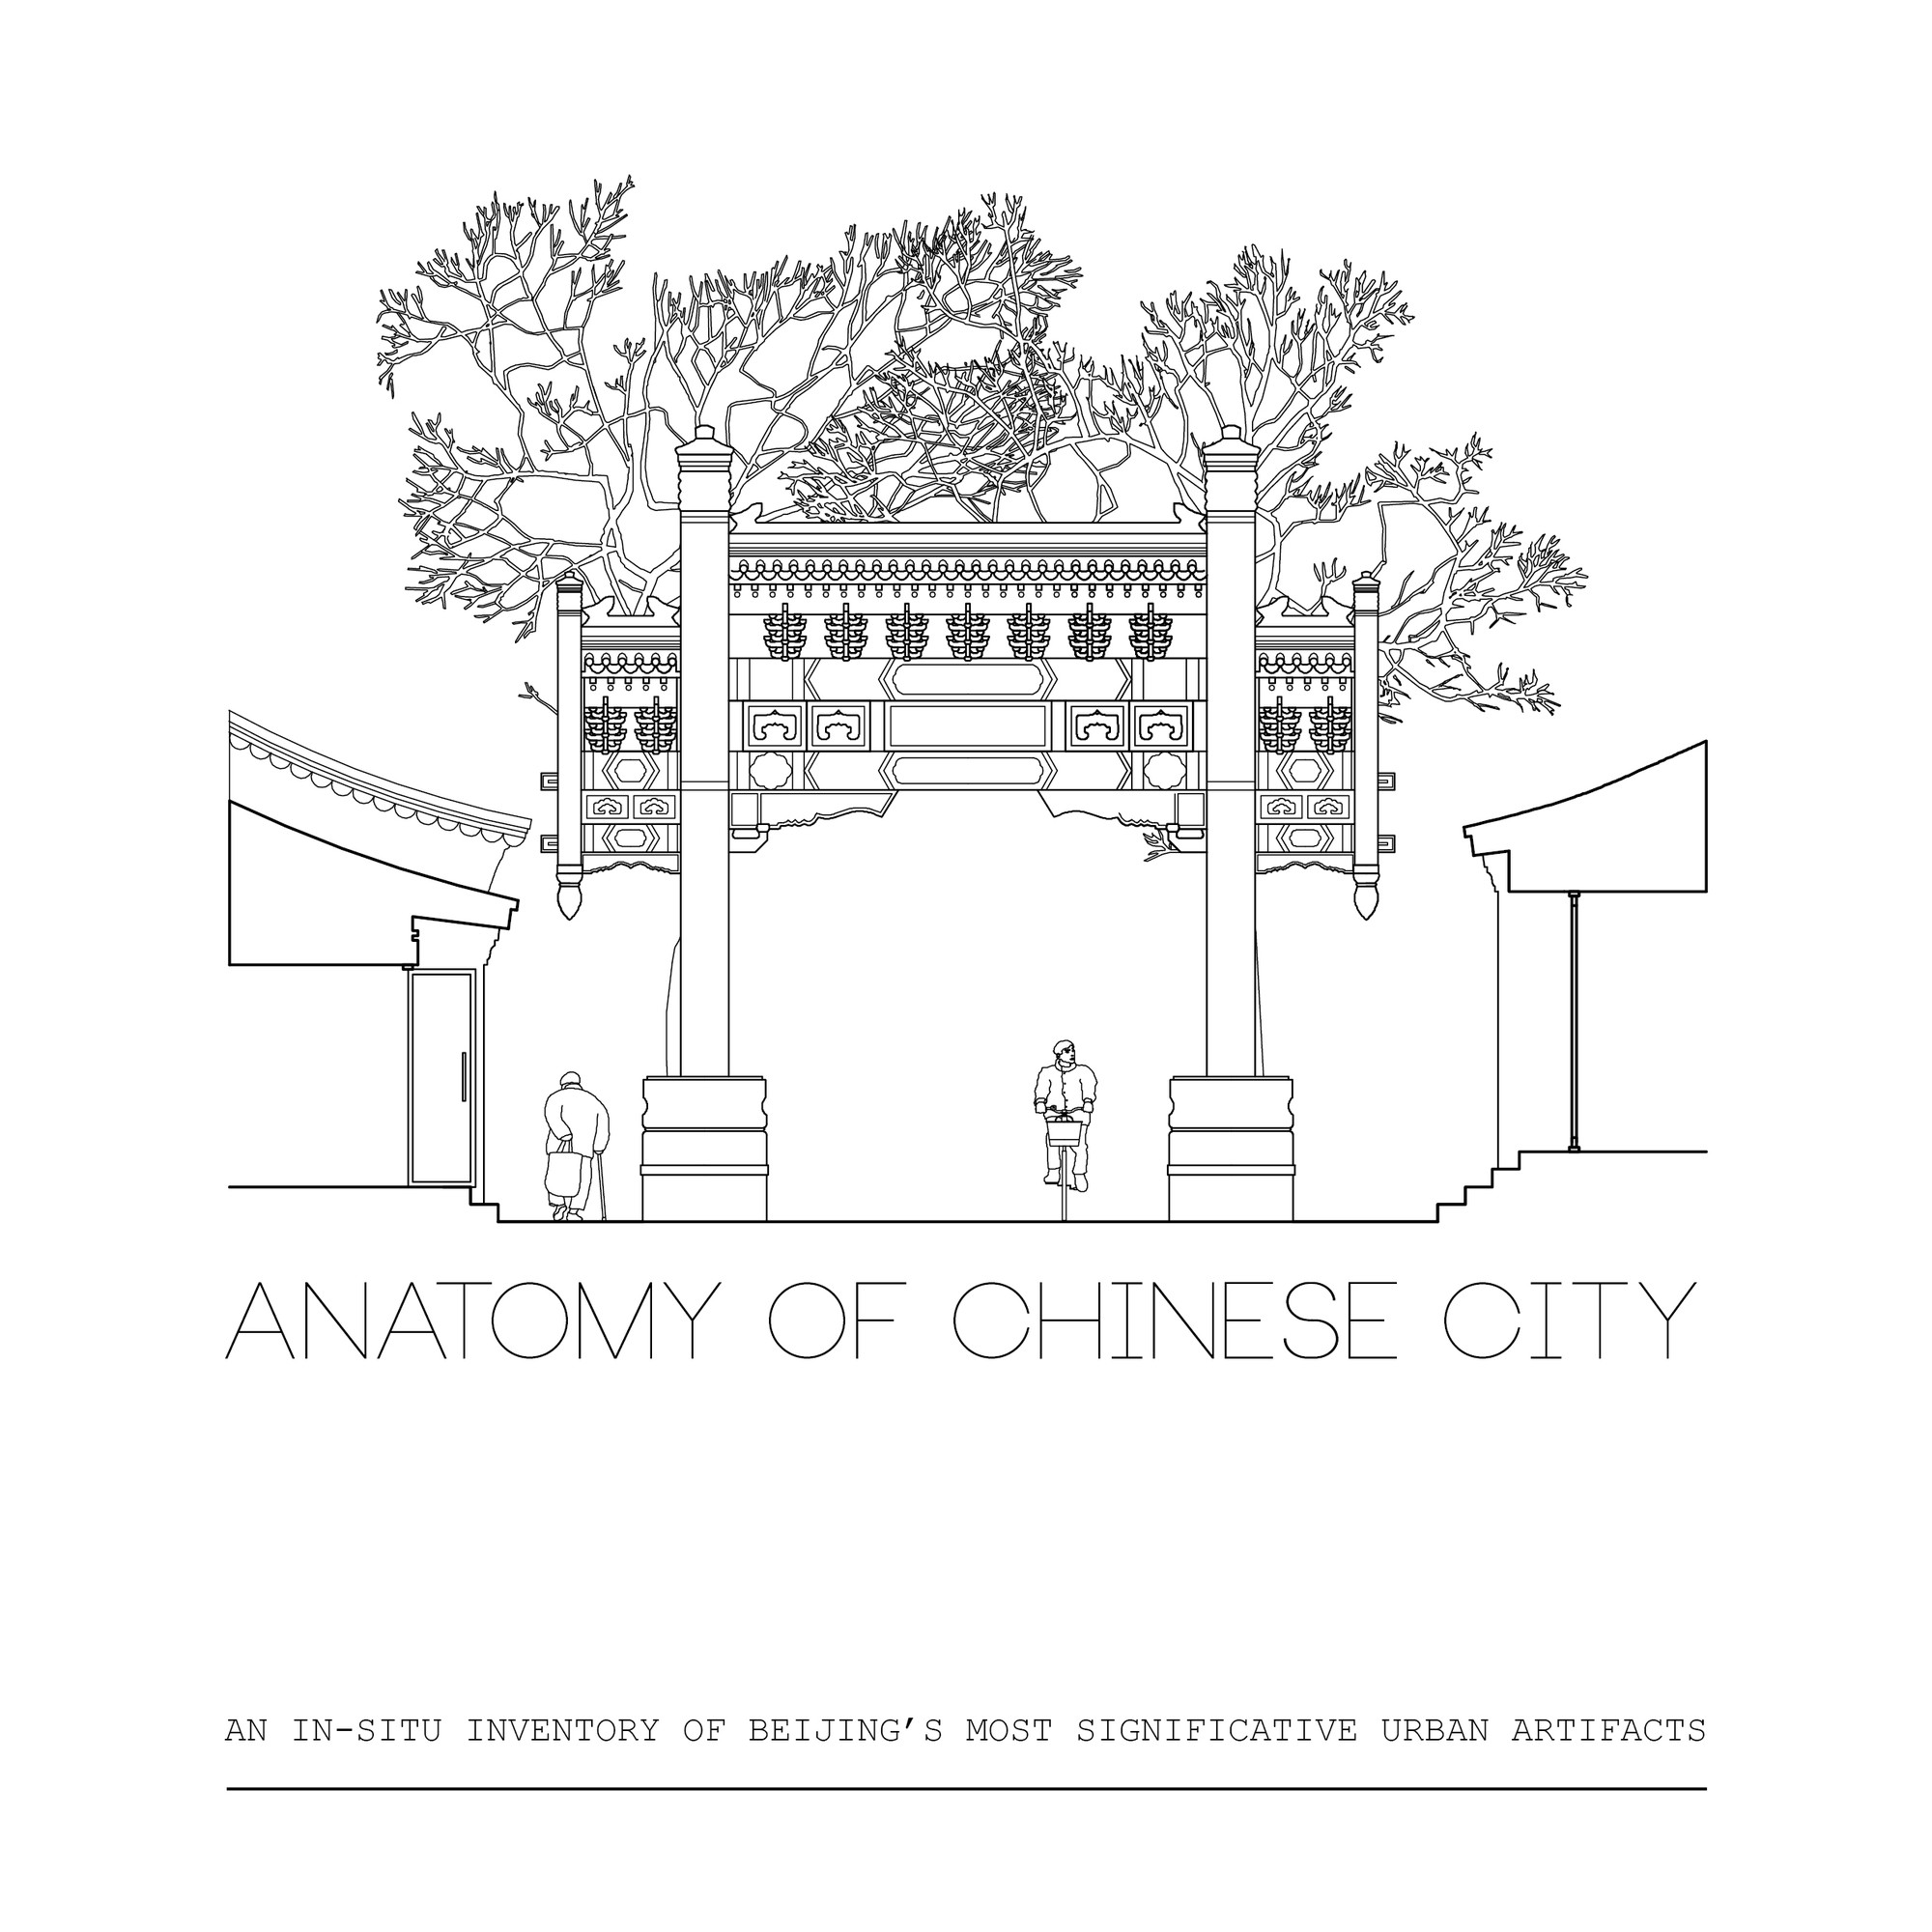 Anatomy of a Chinese City, Courtesy of Thomas Batzenschlager and Clémence Pybaro